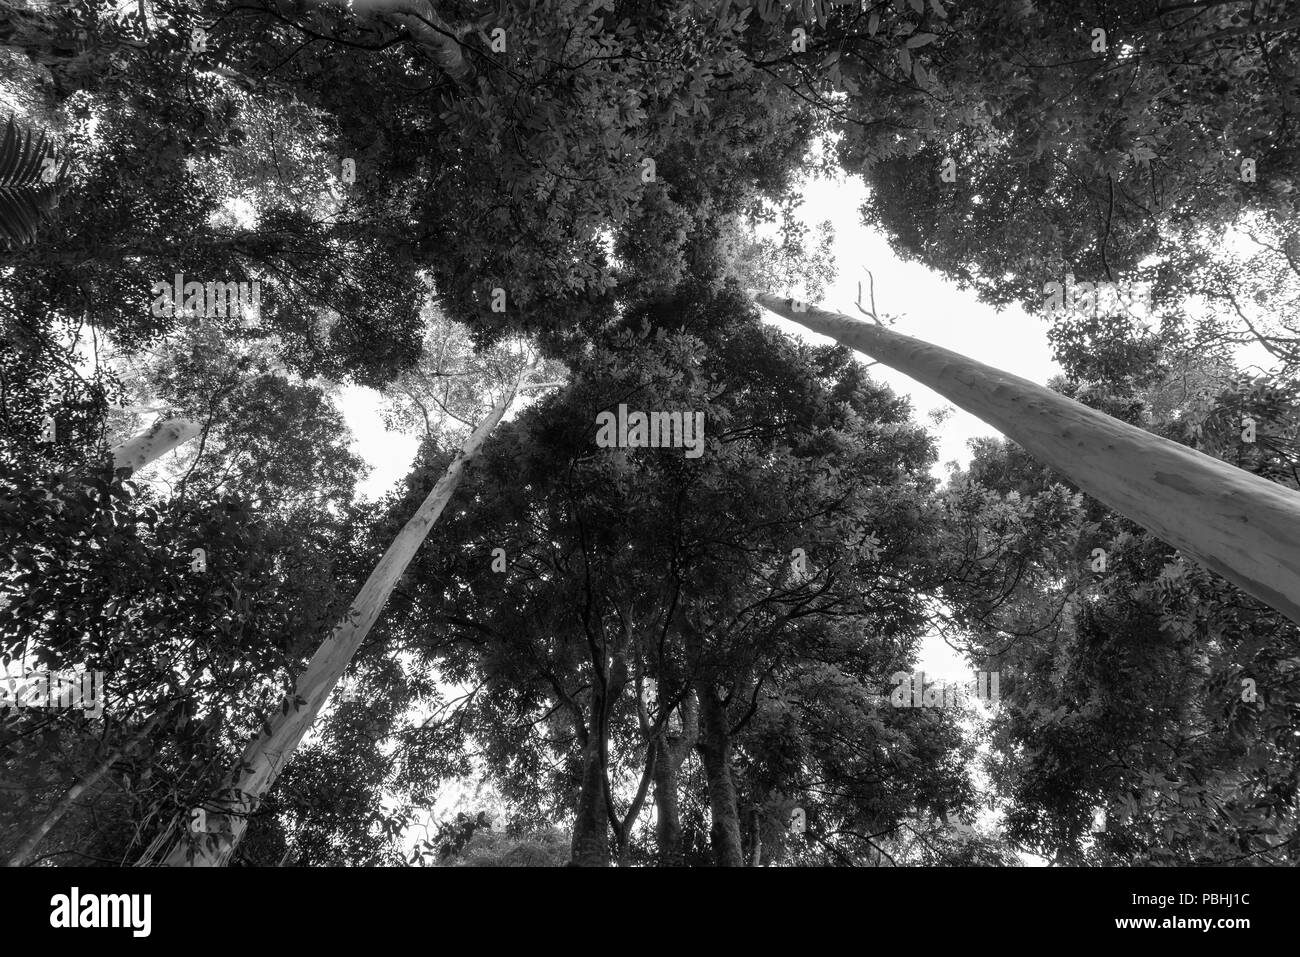 Rainforest canopy above converging lines of eucalyptus tree trunks in black and white - Stock Image